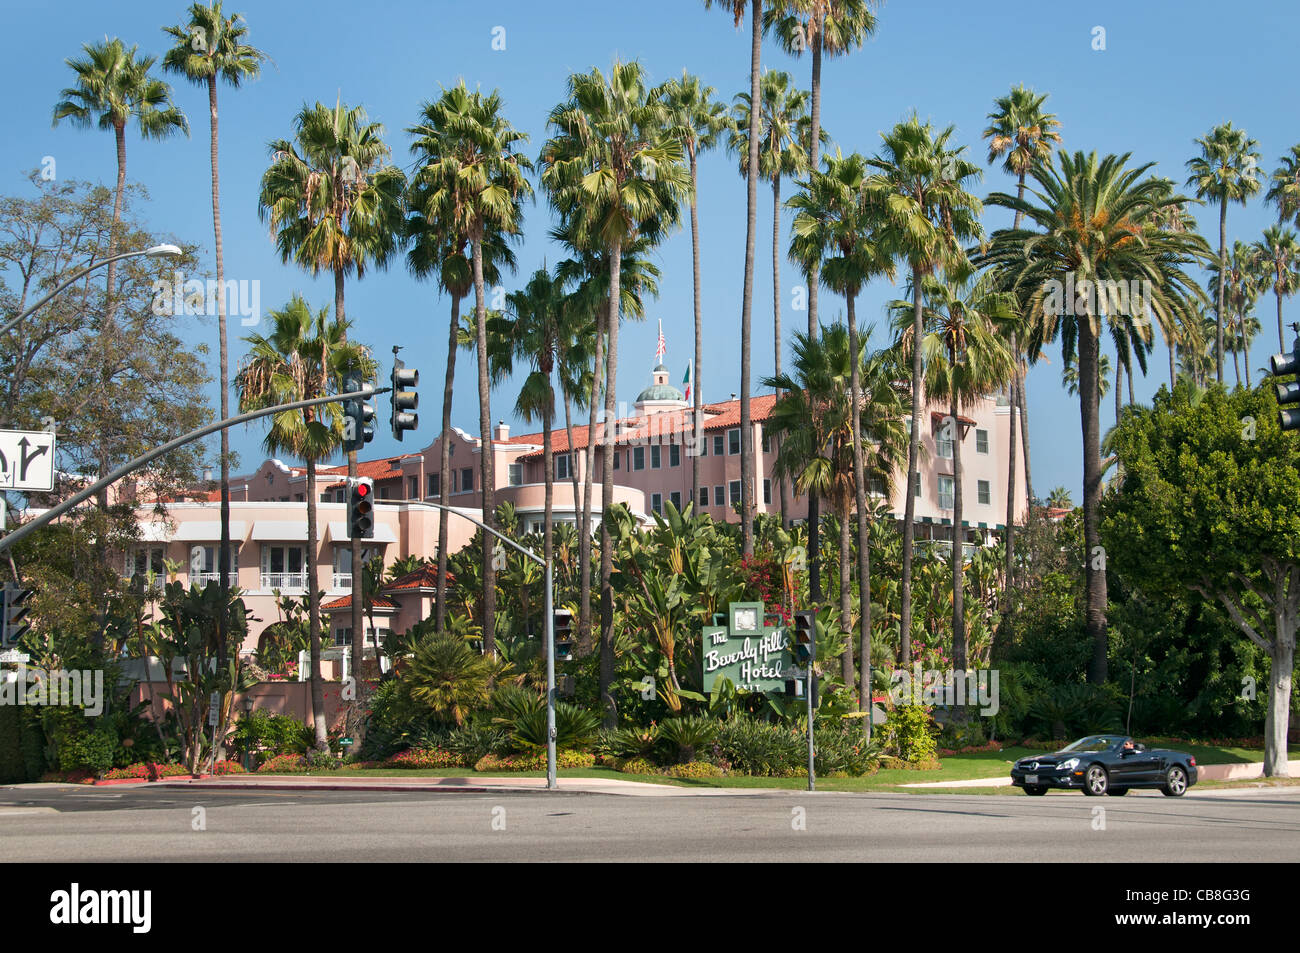 California Hollywood The Beverly Hills Hotel is a luxury, five-star hotel, - Stock Image